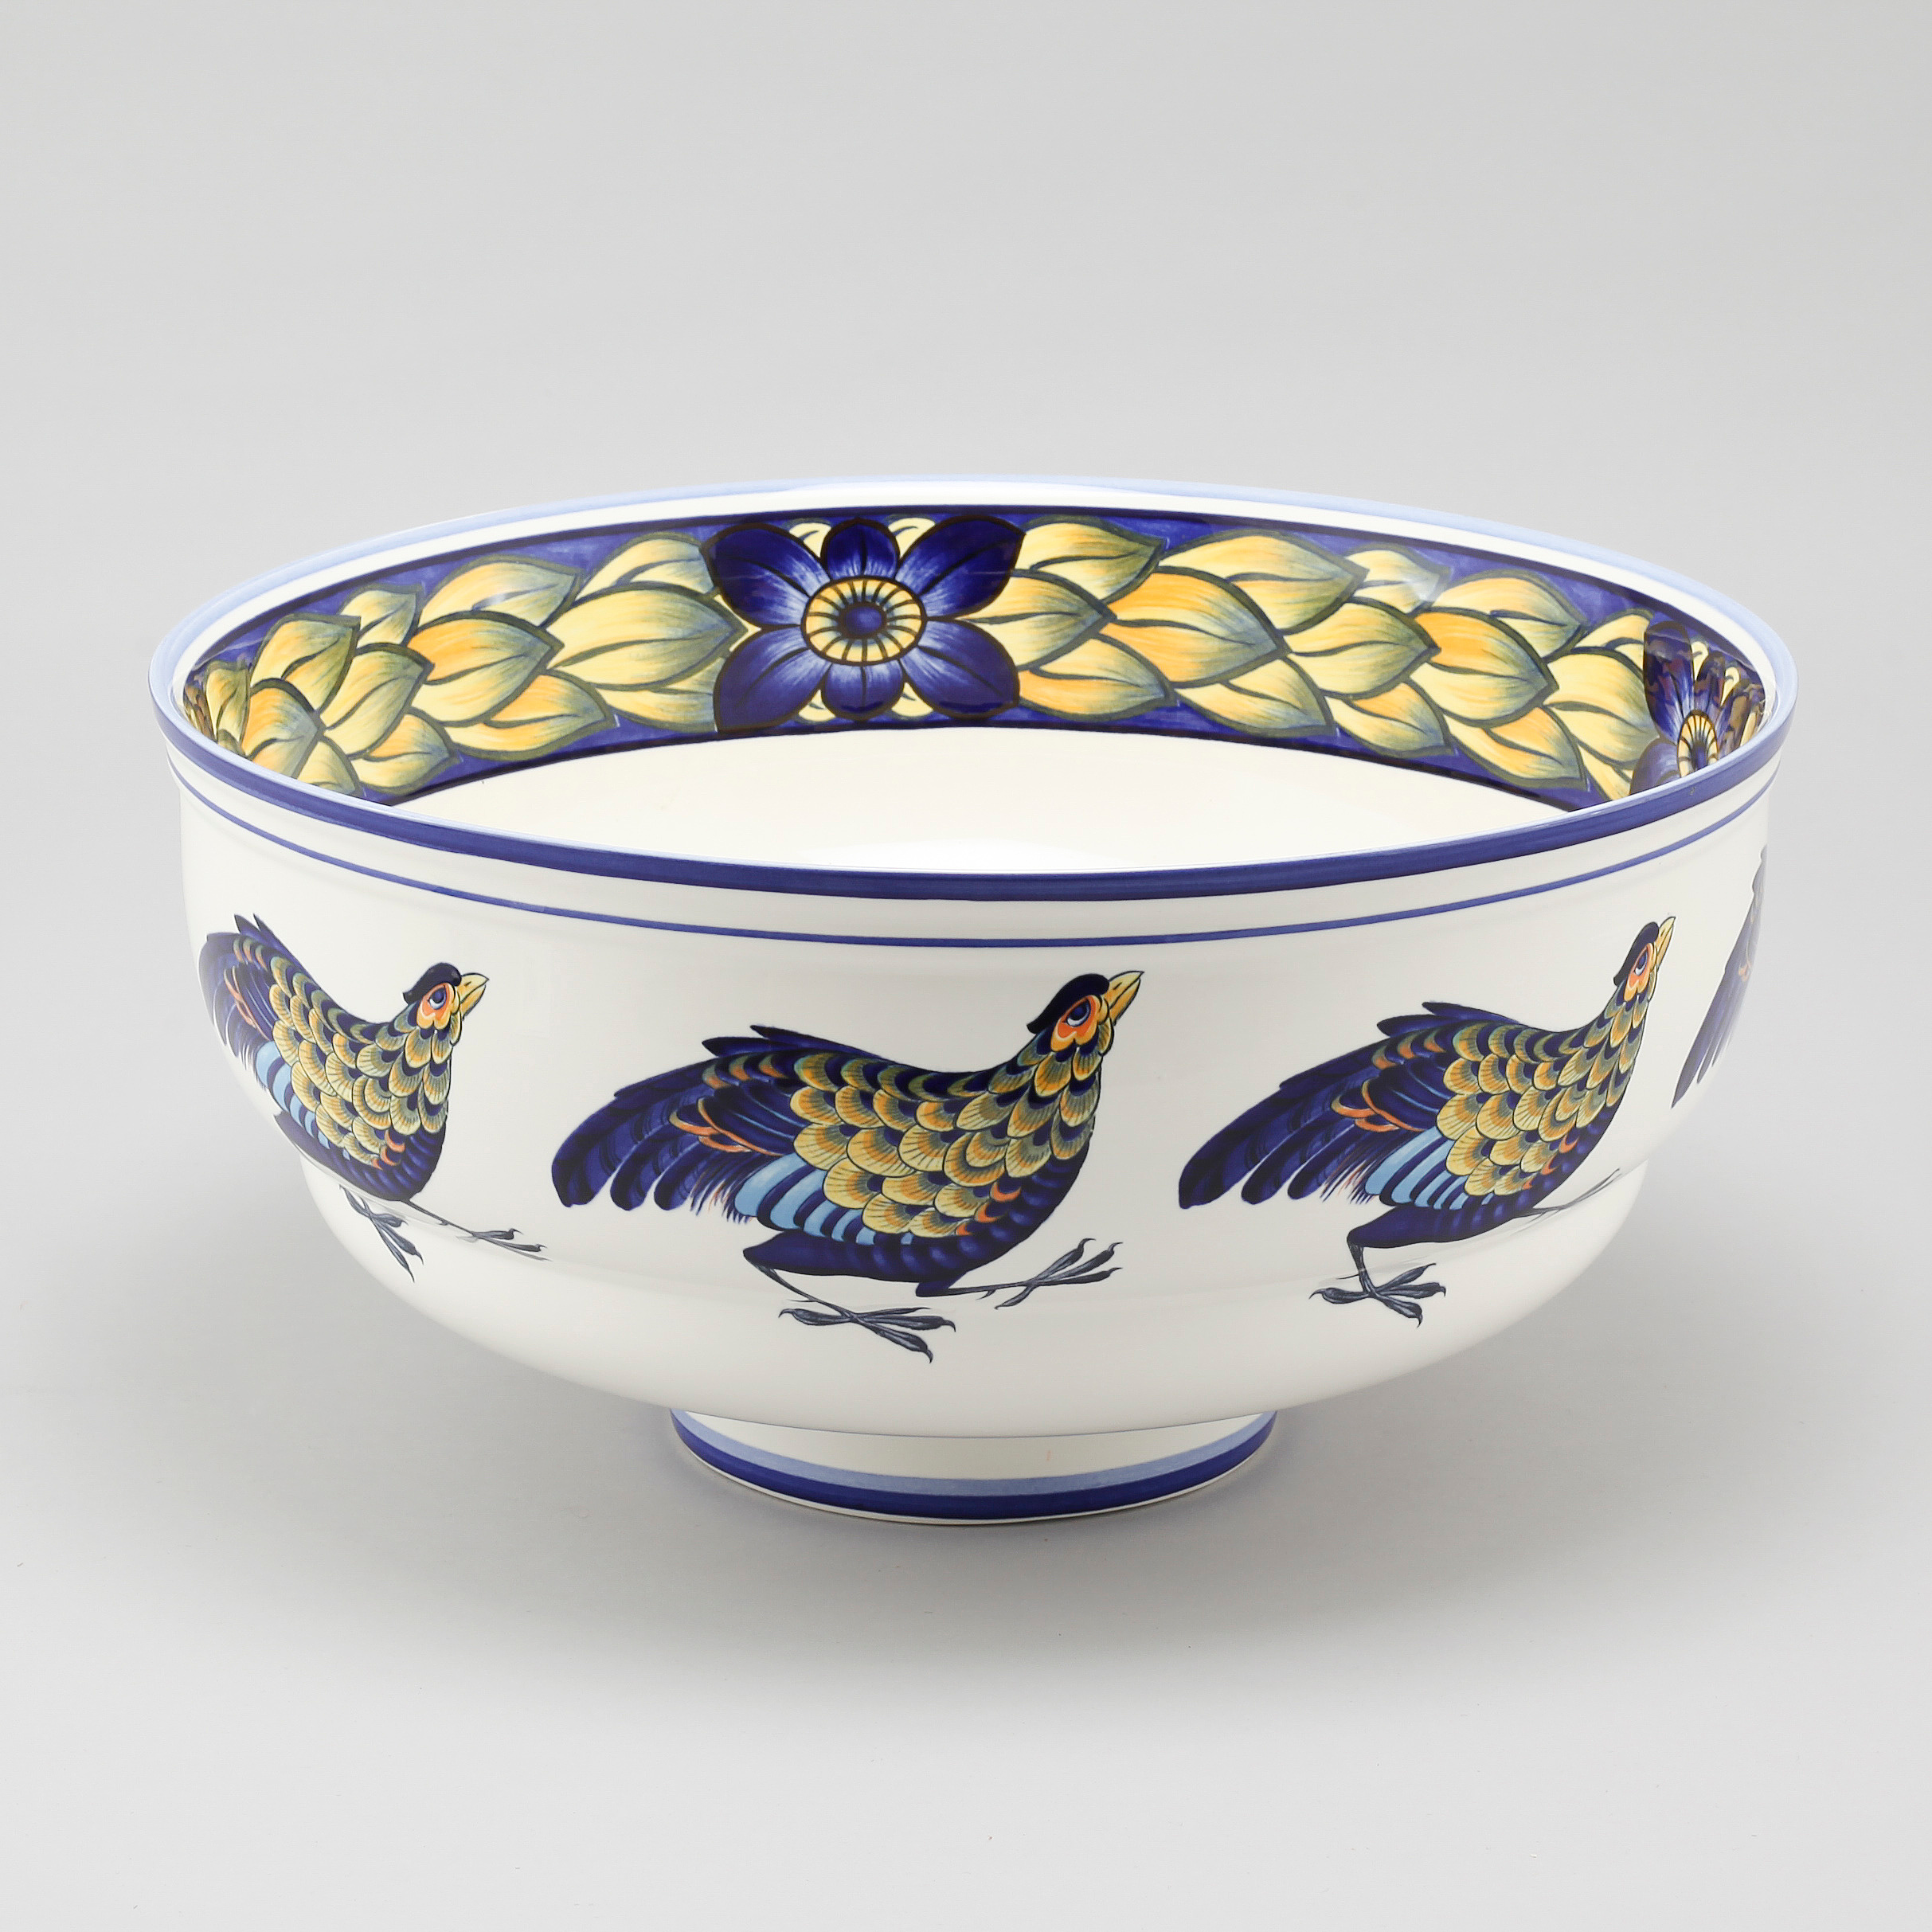 Royal Copenhagen Geschirr Blue Pheasant Tableware Image Is Loading Royal Copenhagen Blue